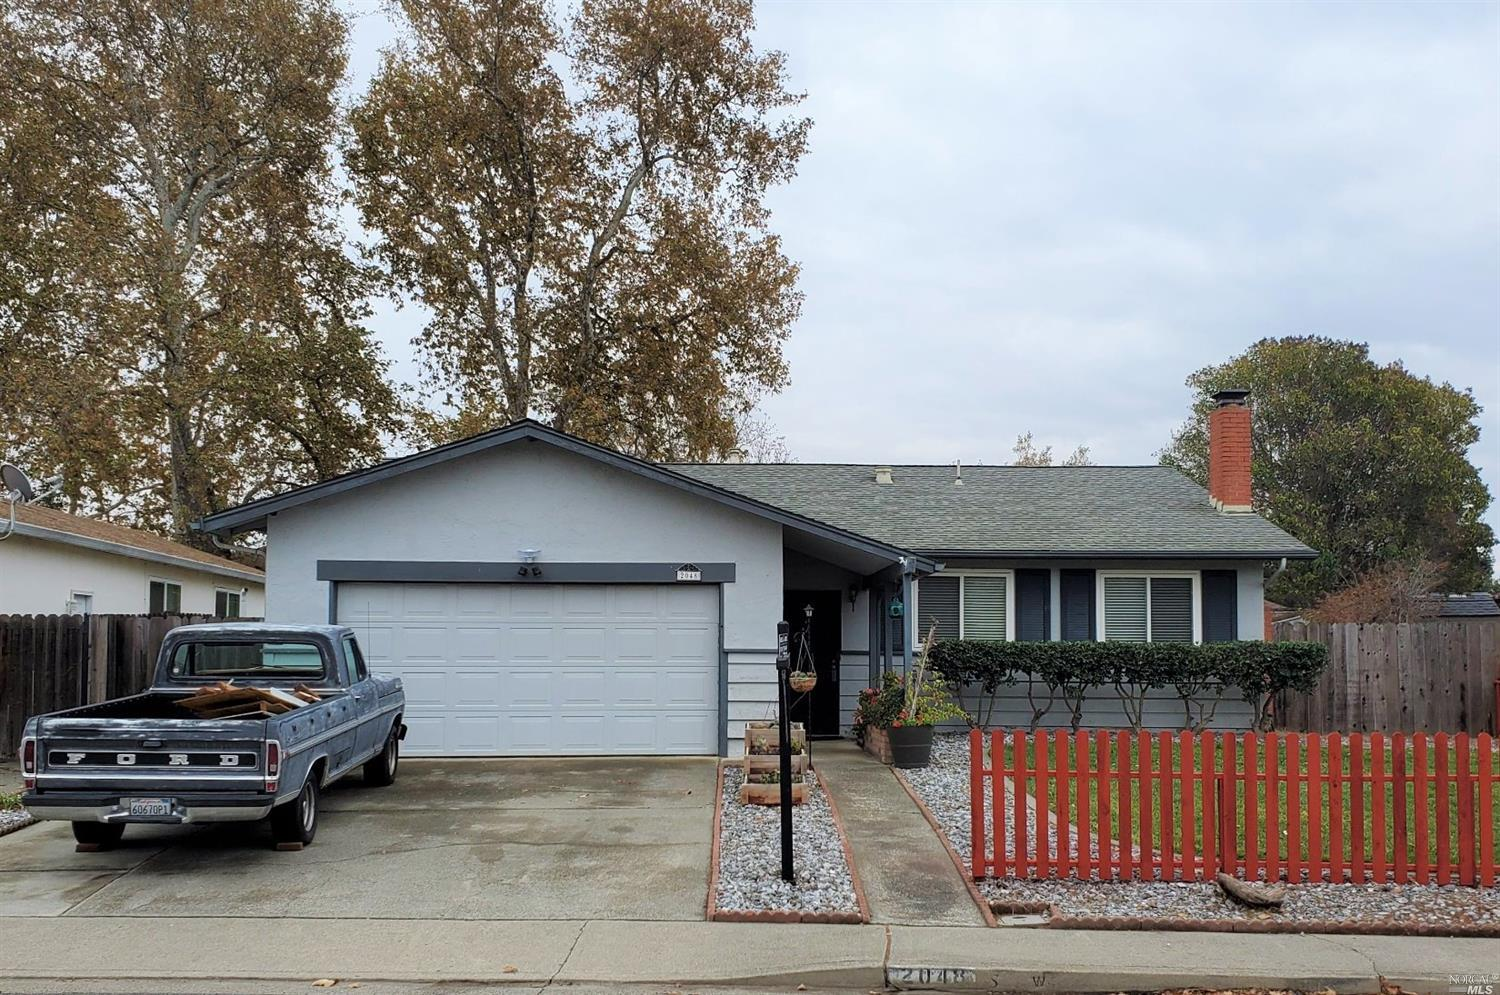 Charming 3 bedroom, 2 full bath home.  Spacious kitchen with eat-in bar area in open-floor plan with